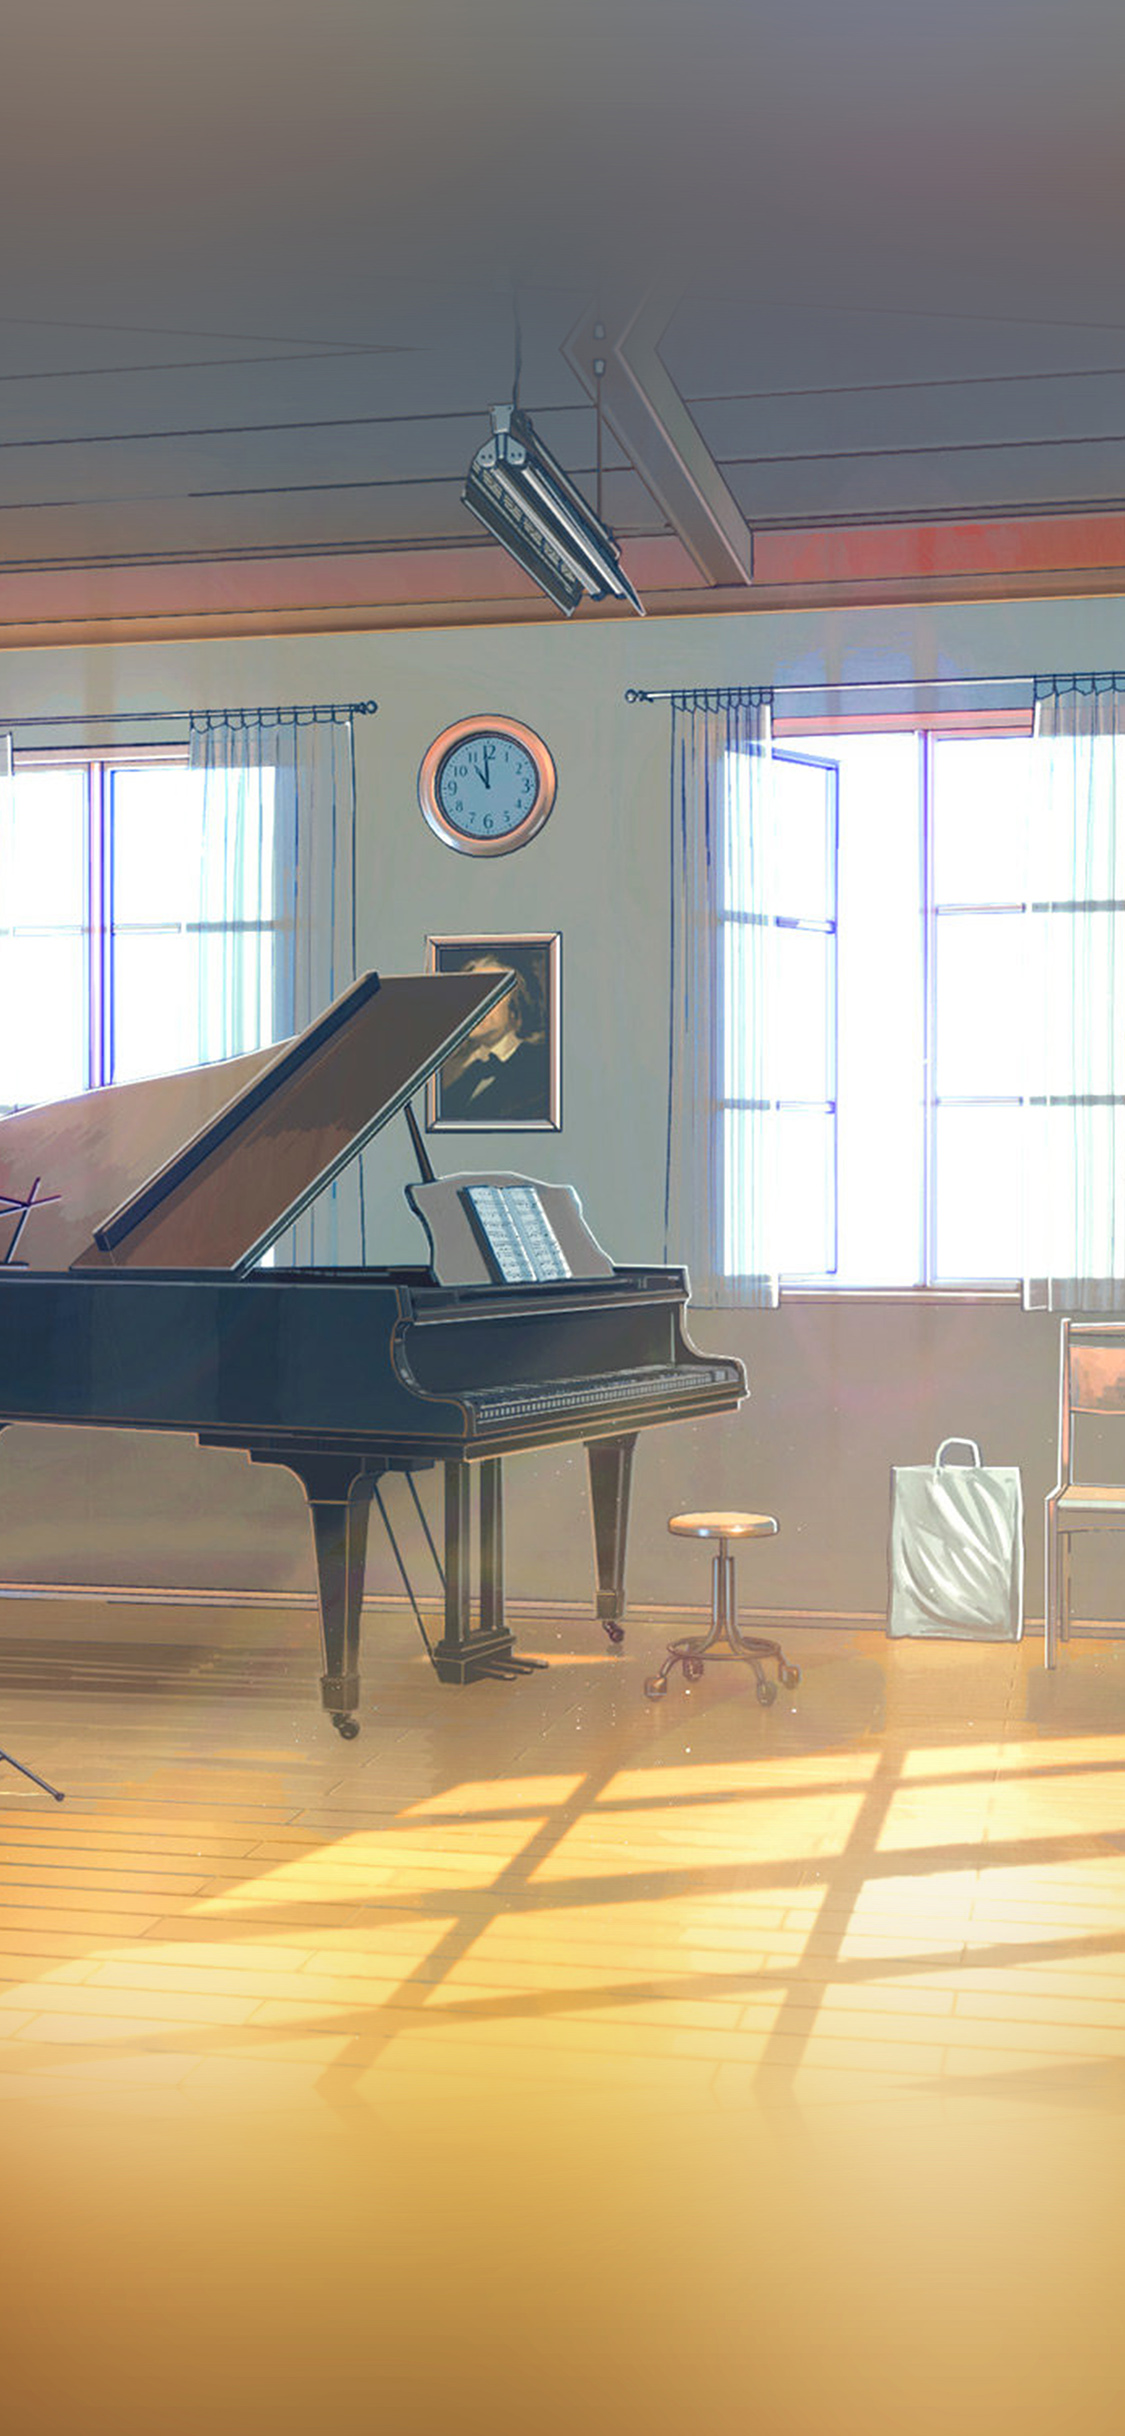 iPhoneXpapers.com-Apple-iPhone-wallpaper-aw48-arseniy-chebynkin-music-room-piano-illustration-art